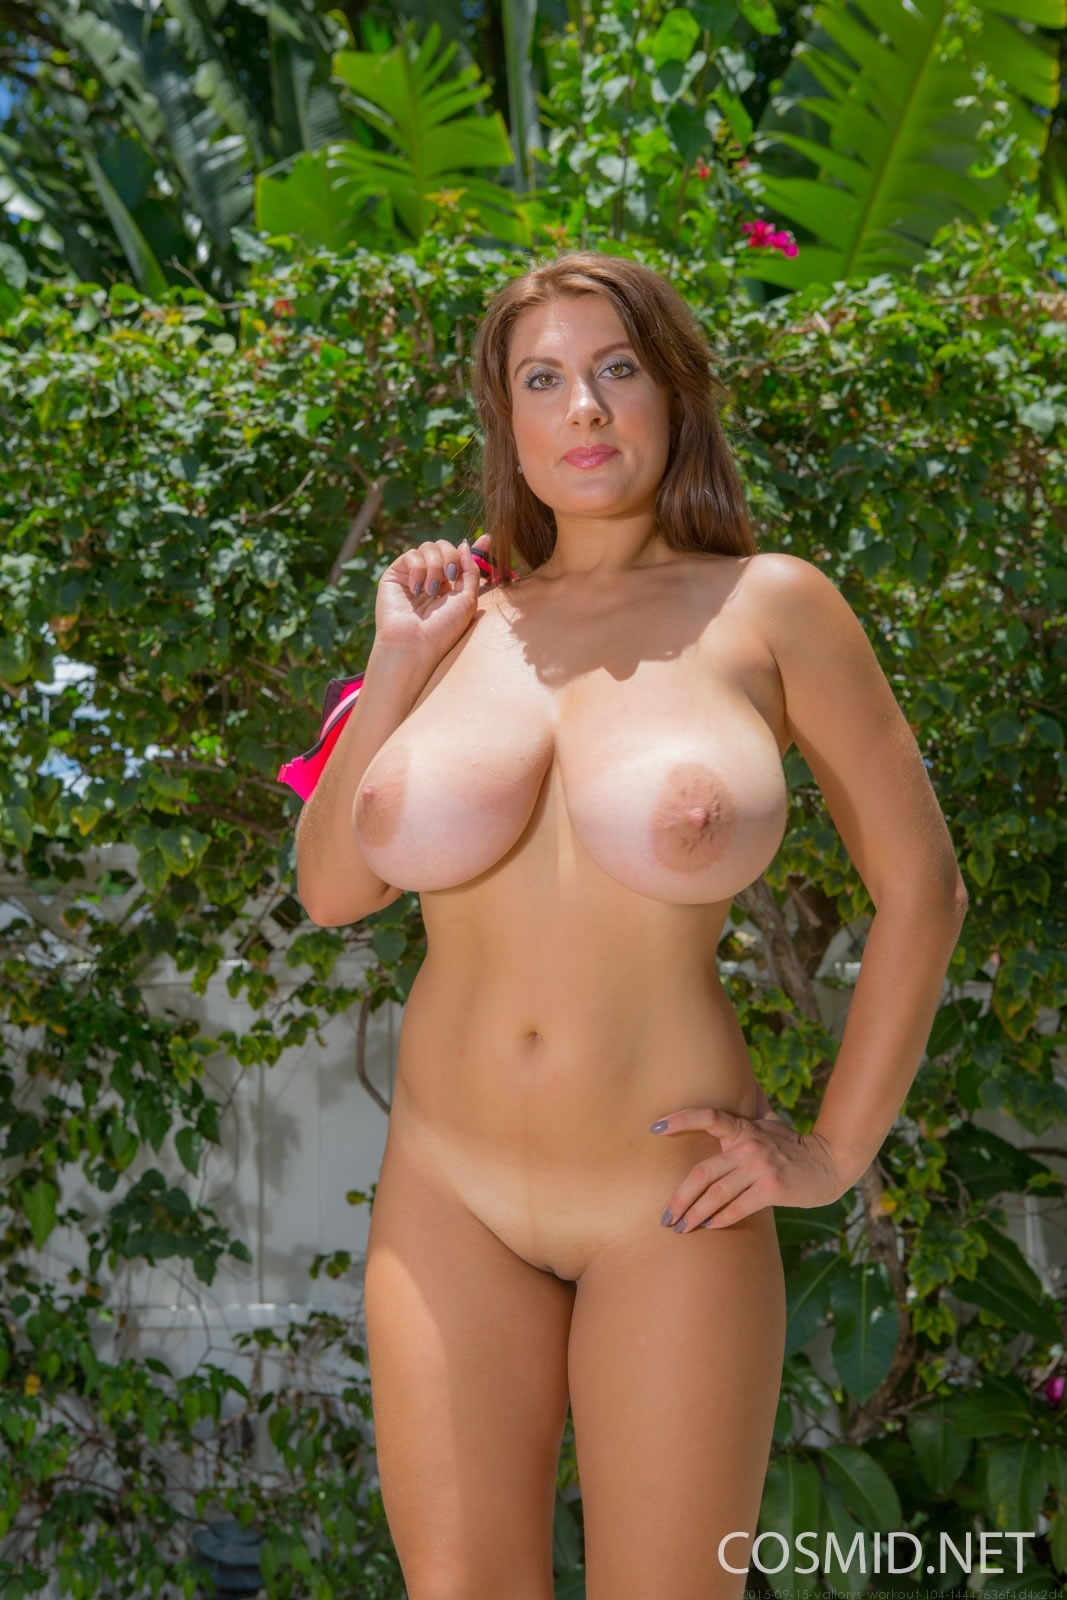 Now Naked big tit redhead video are gonna